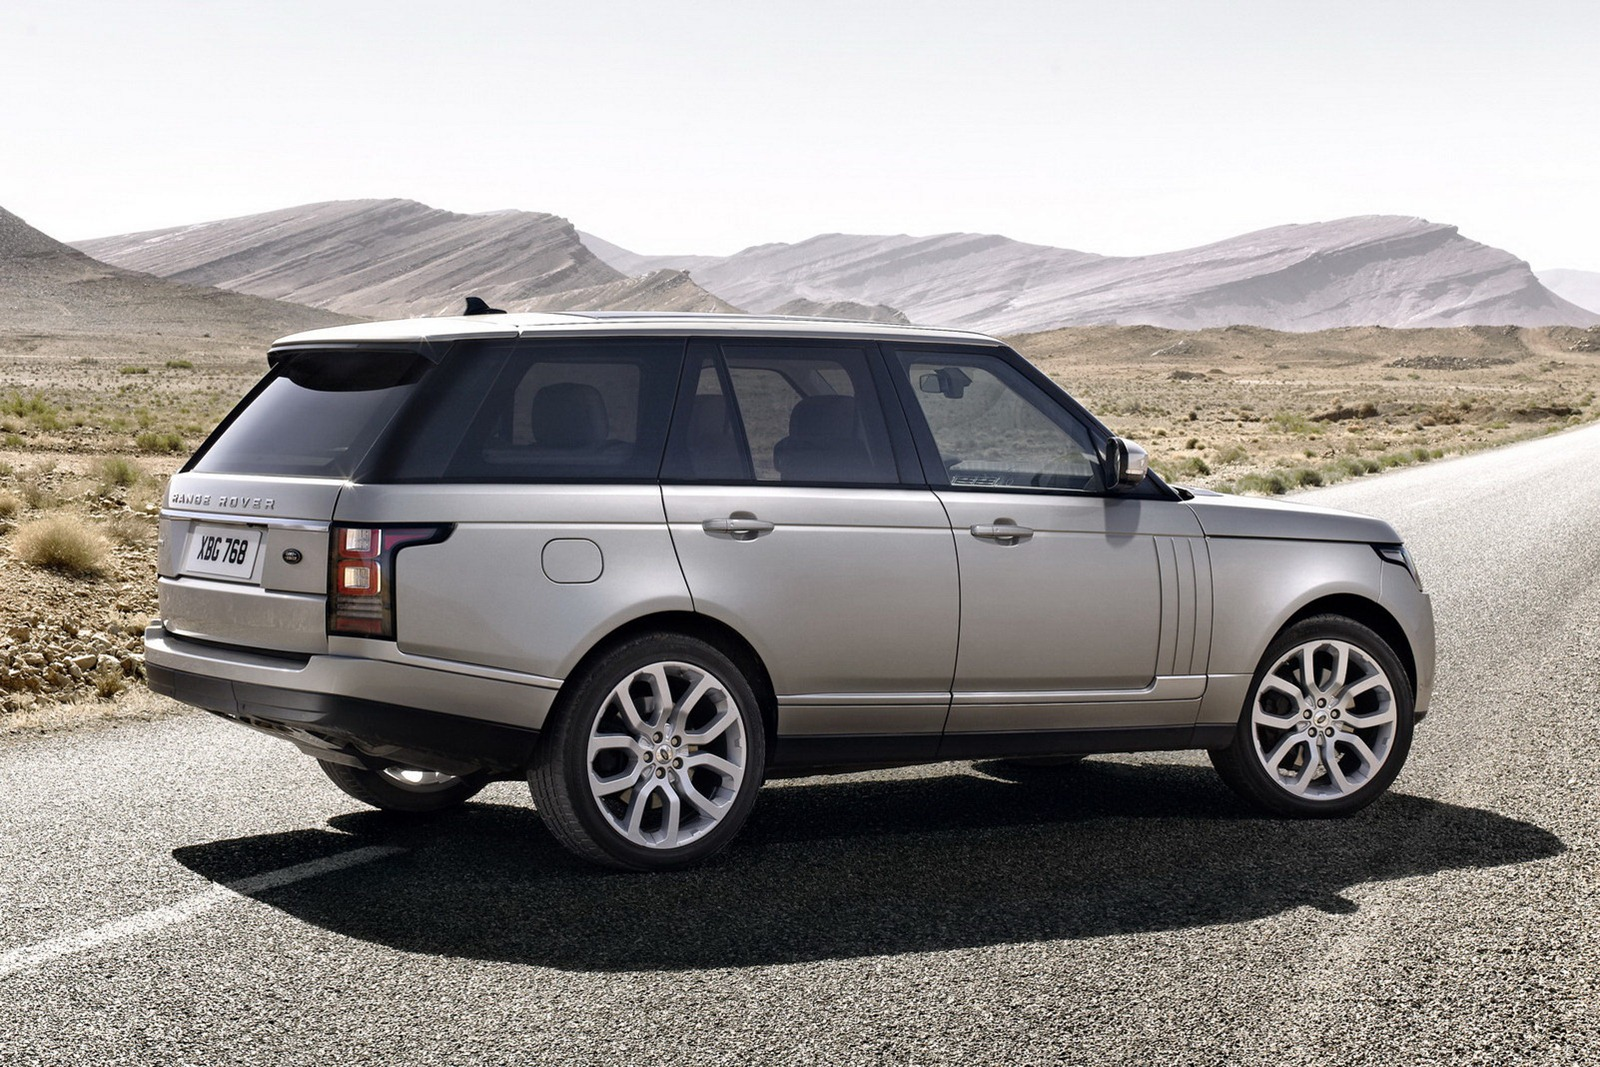 2013 range rover vogue. Black Bedroom Furniture Sets. Home Design Ideas